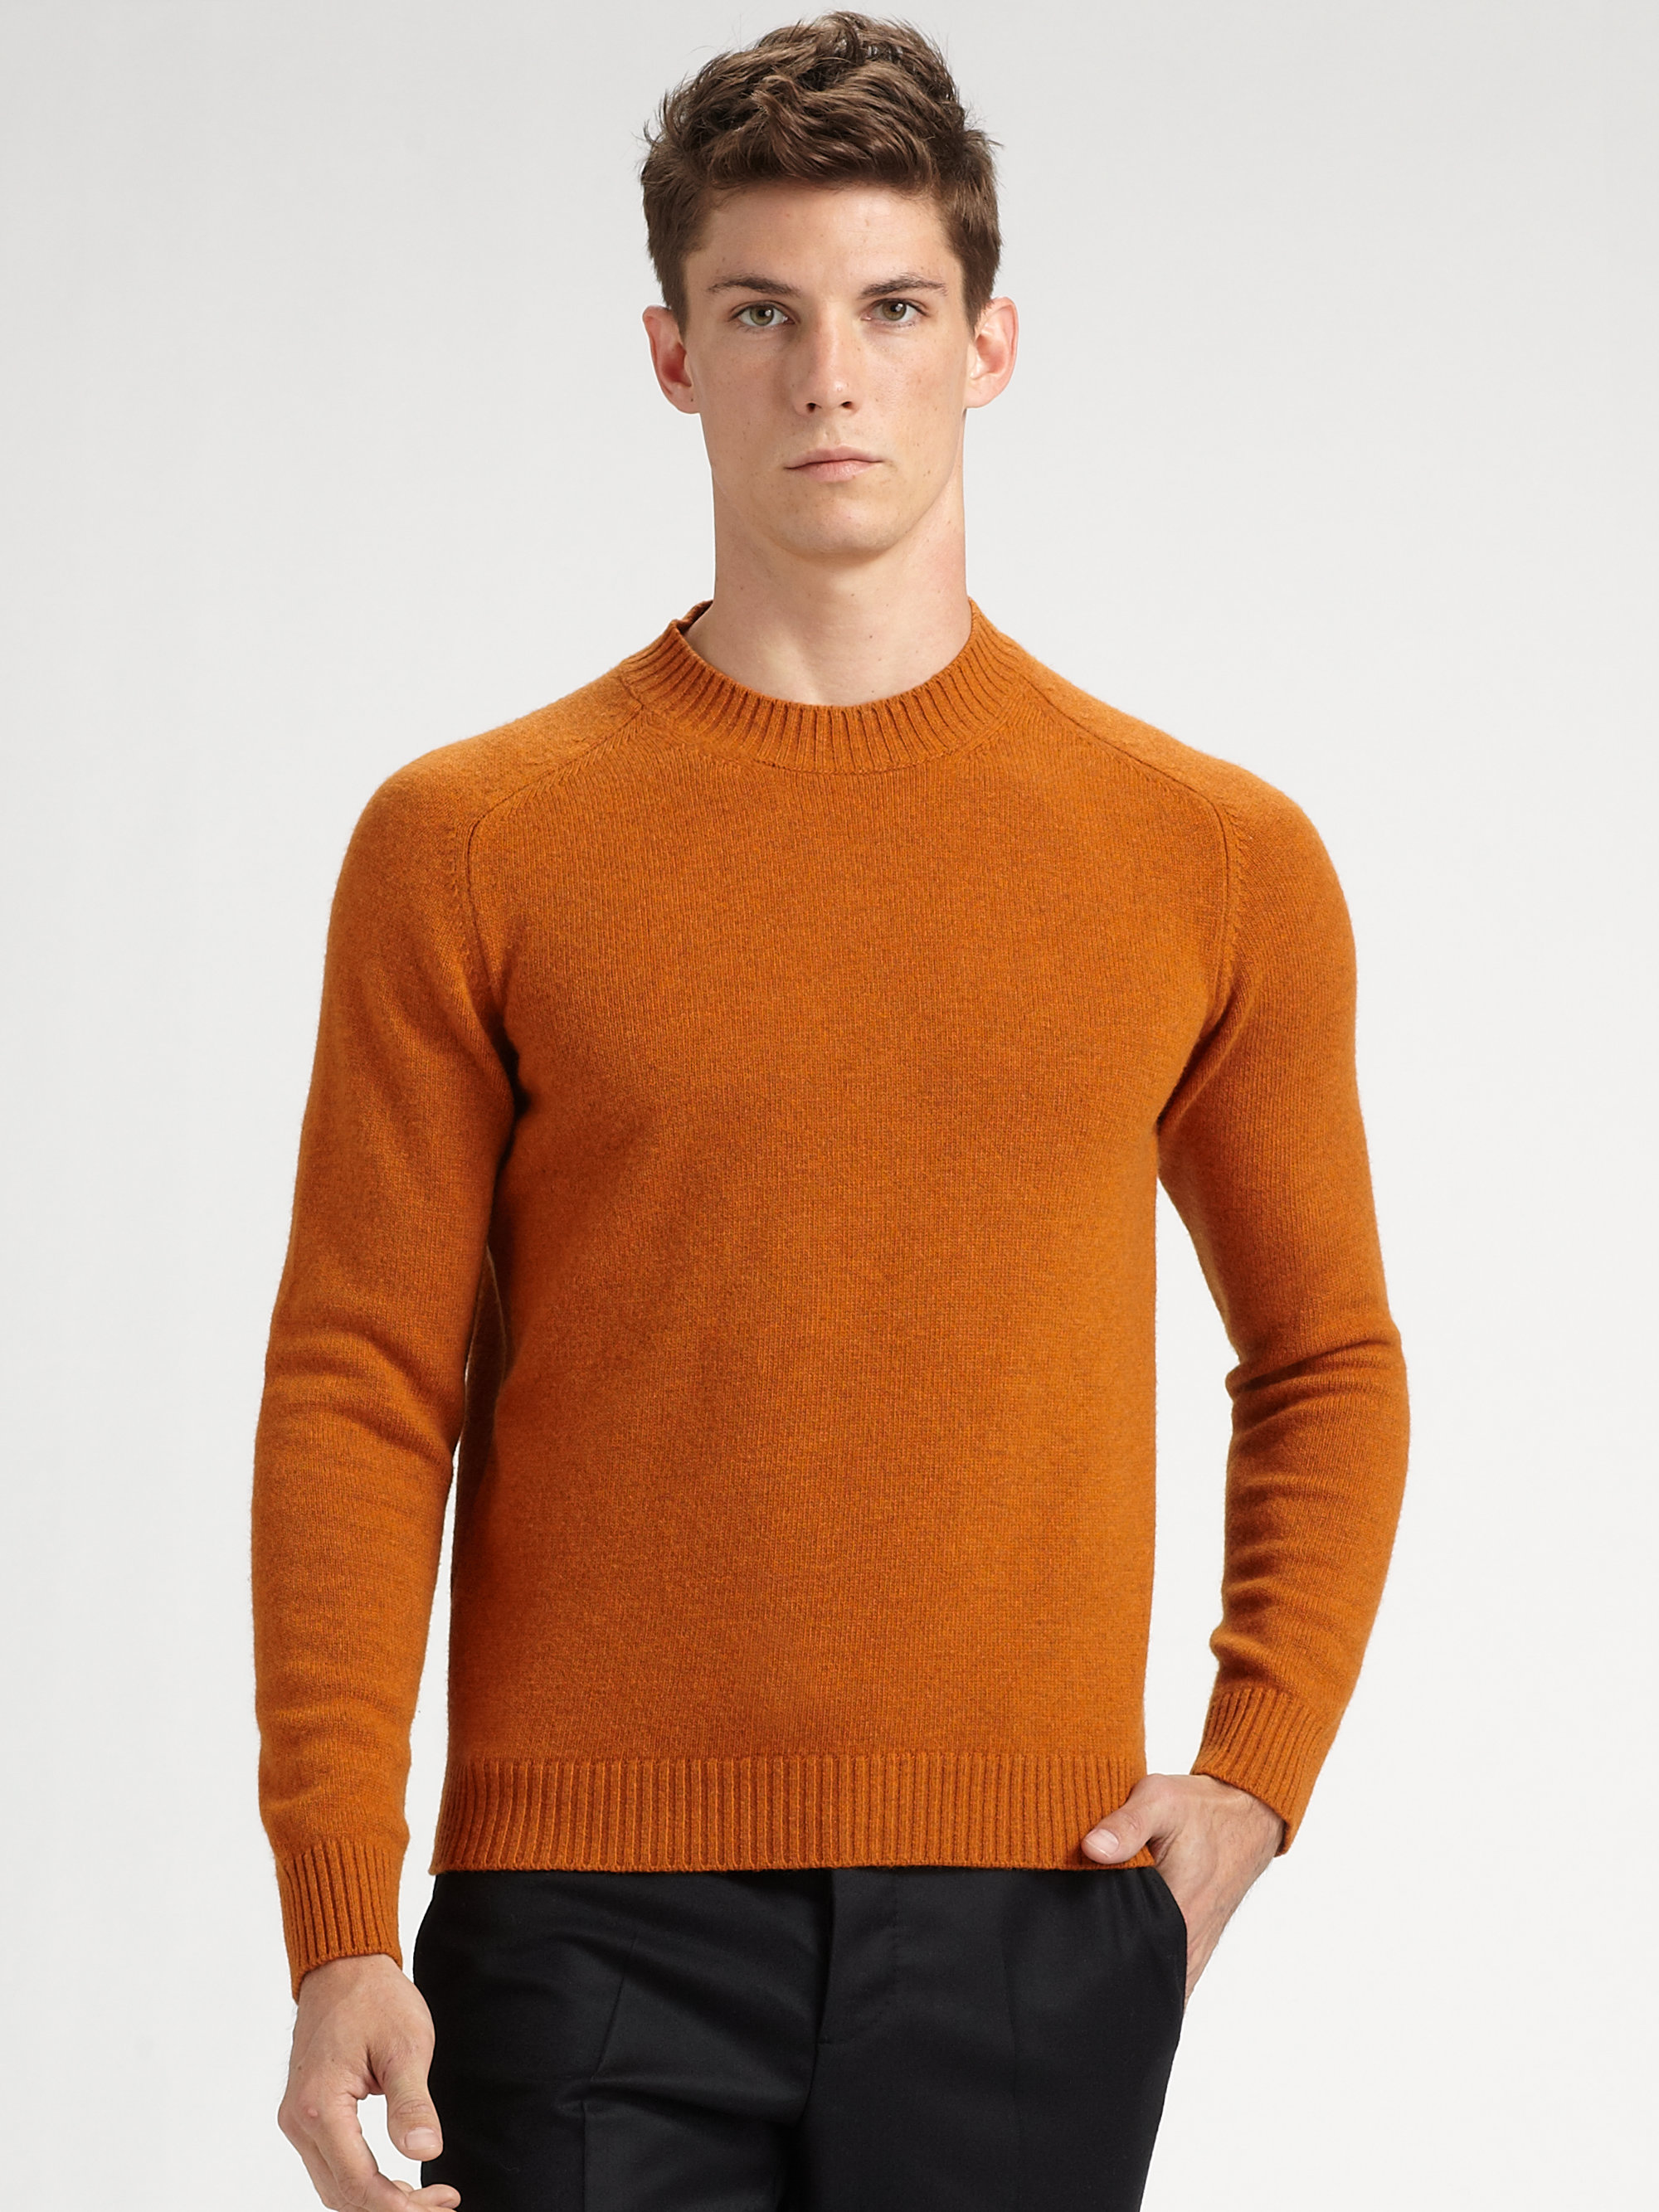 lyst jil sander wool crewneck sweater in orange for men. Black Bedroom Furniture Sets. Home Design Ideas